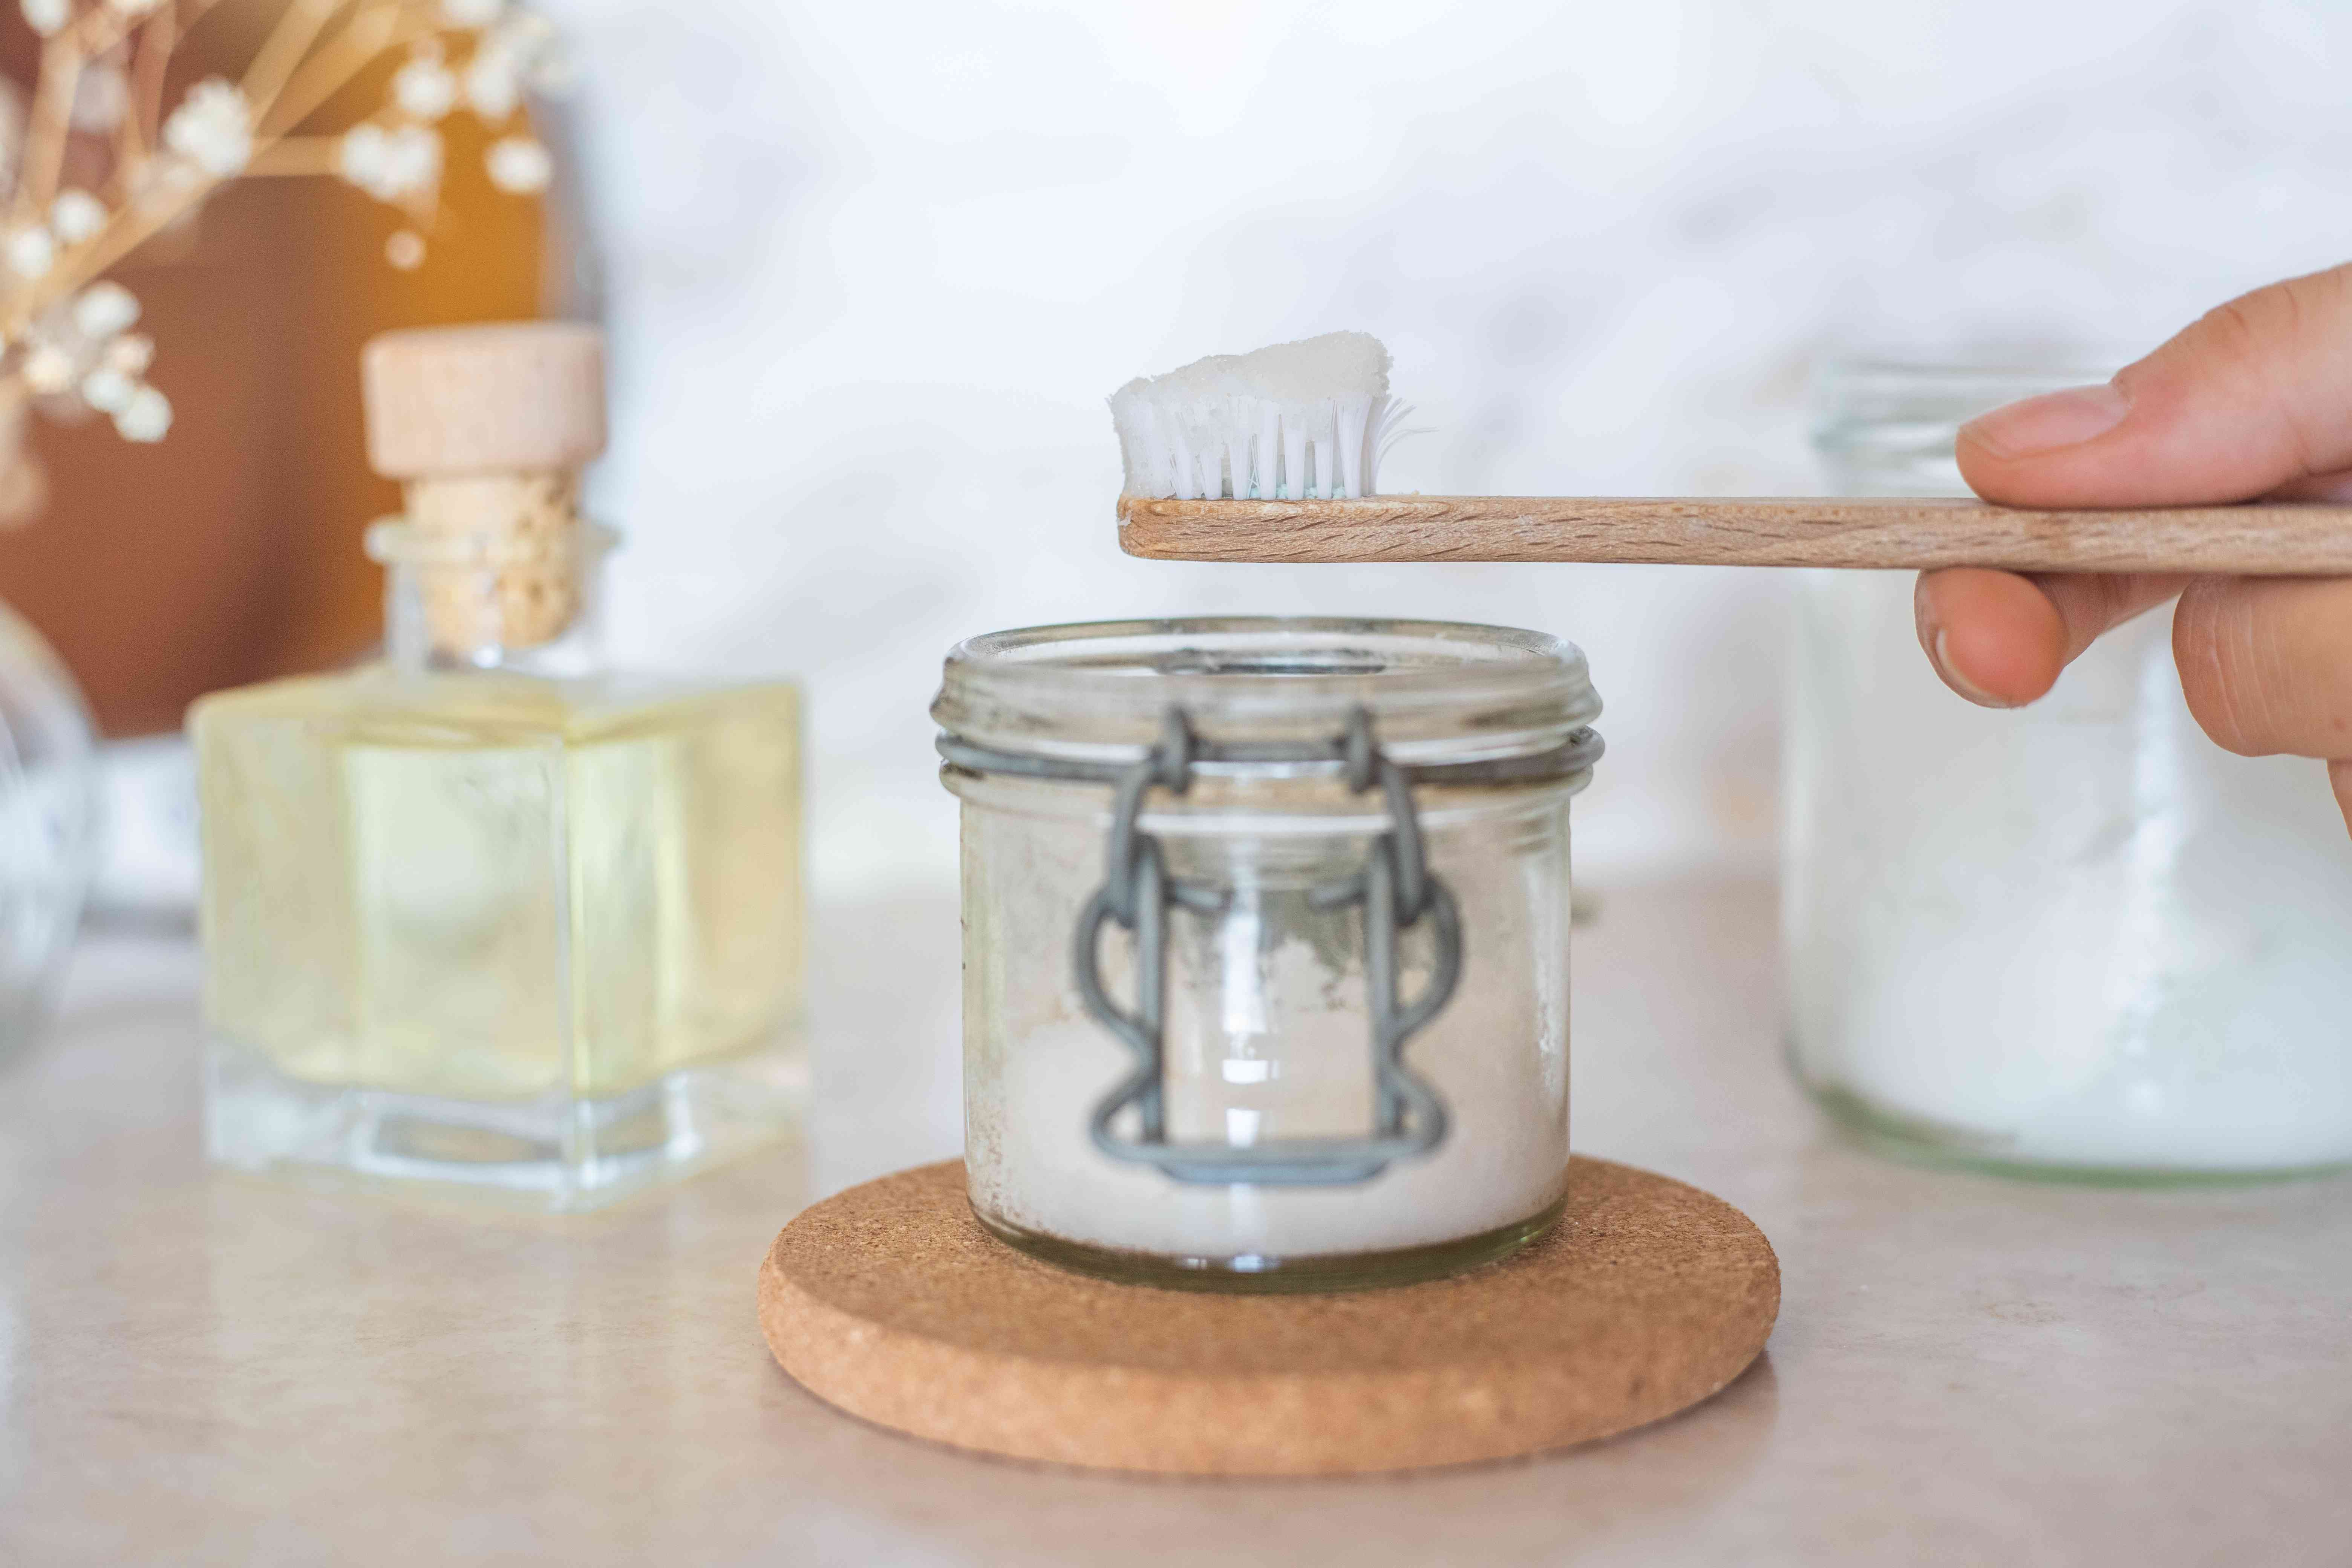 hand holds bamboo toothbrush above glass container of diy baking soda toothpaste